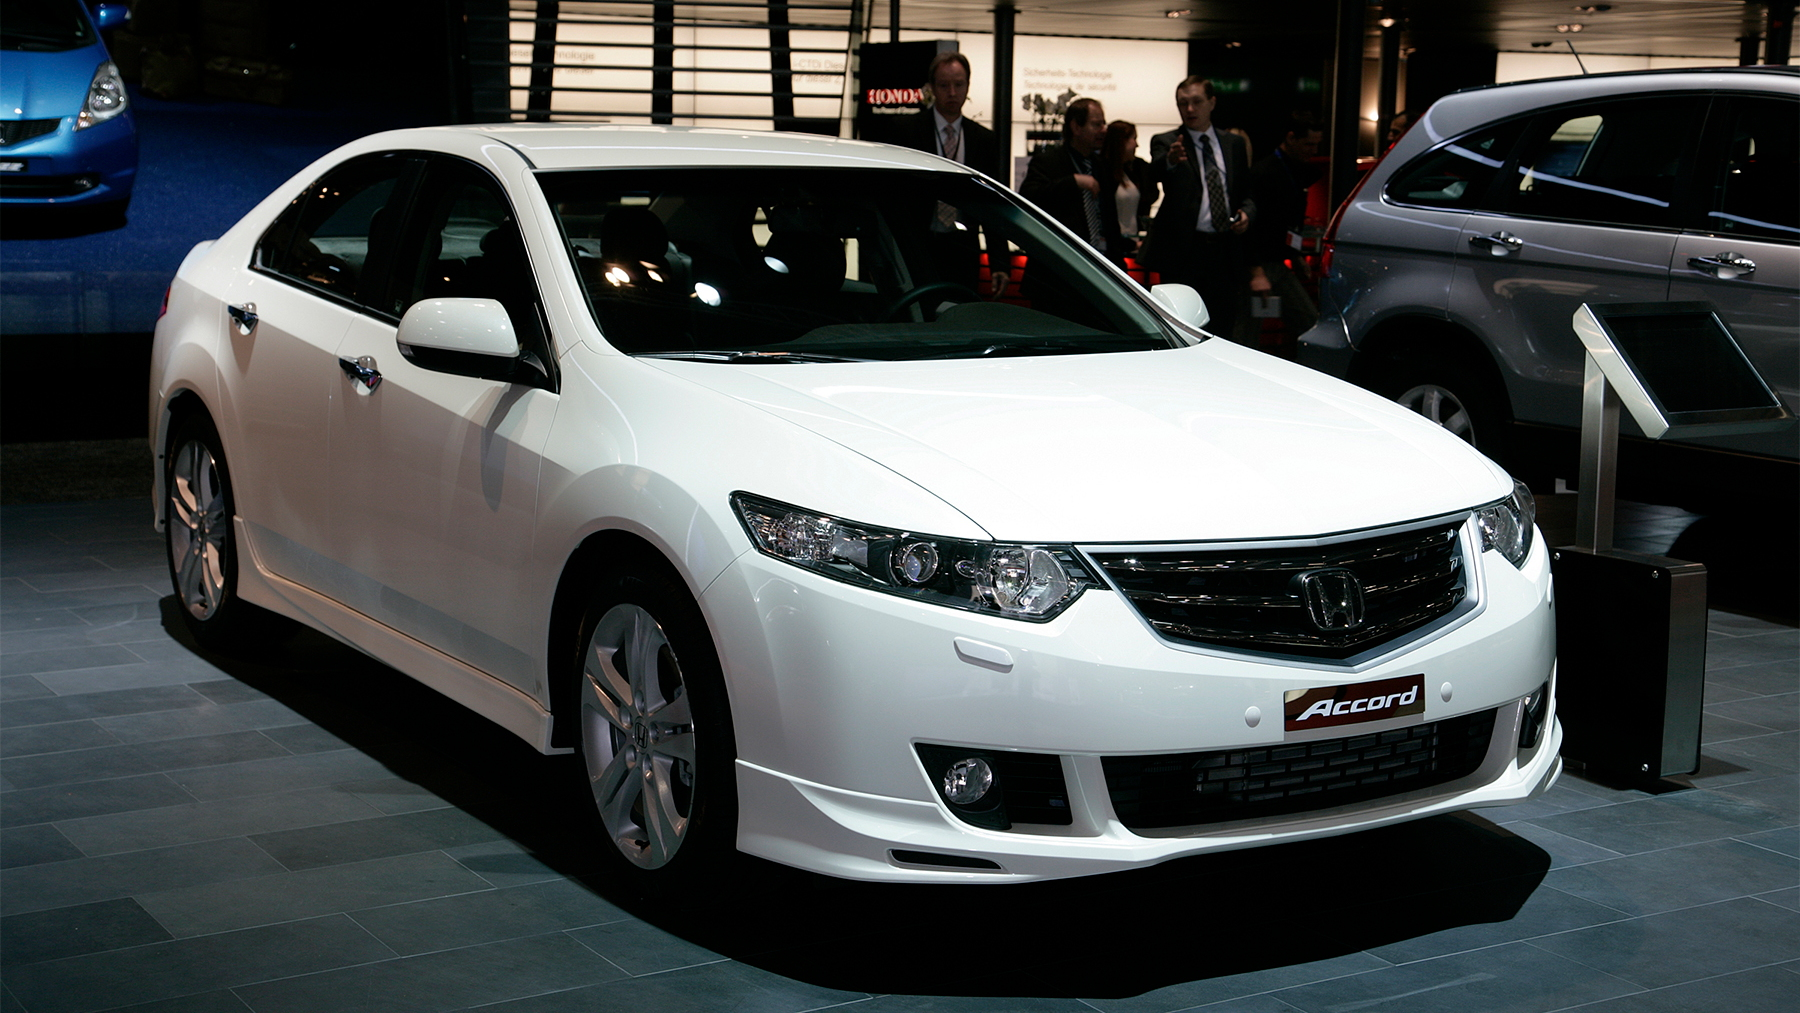 2010 honda accord euro type s 001